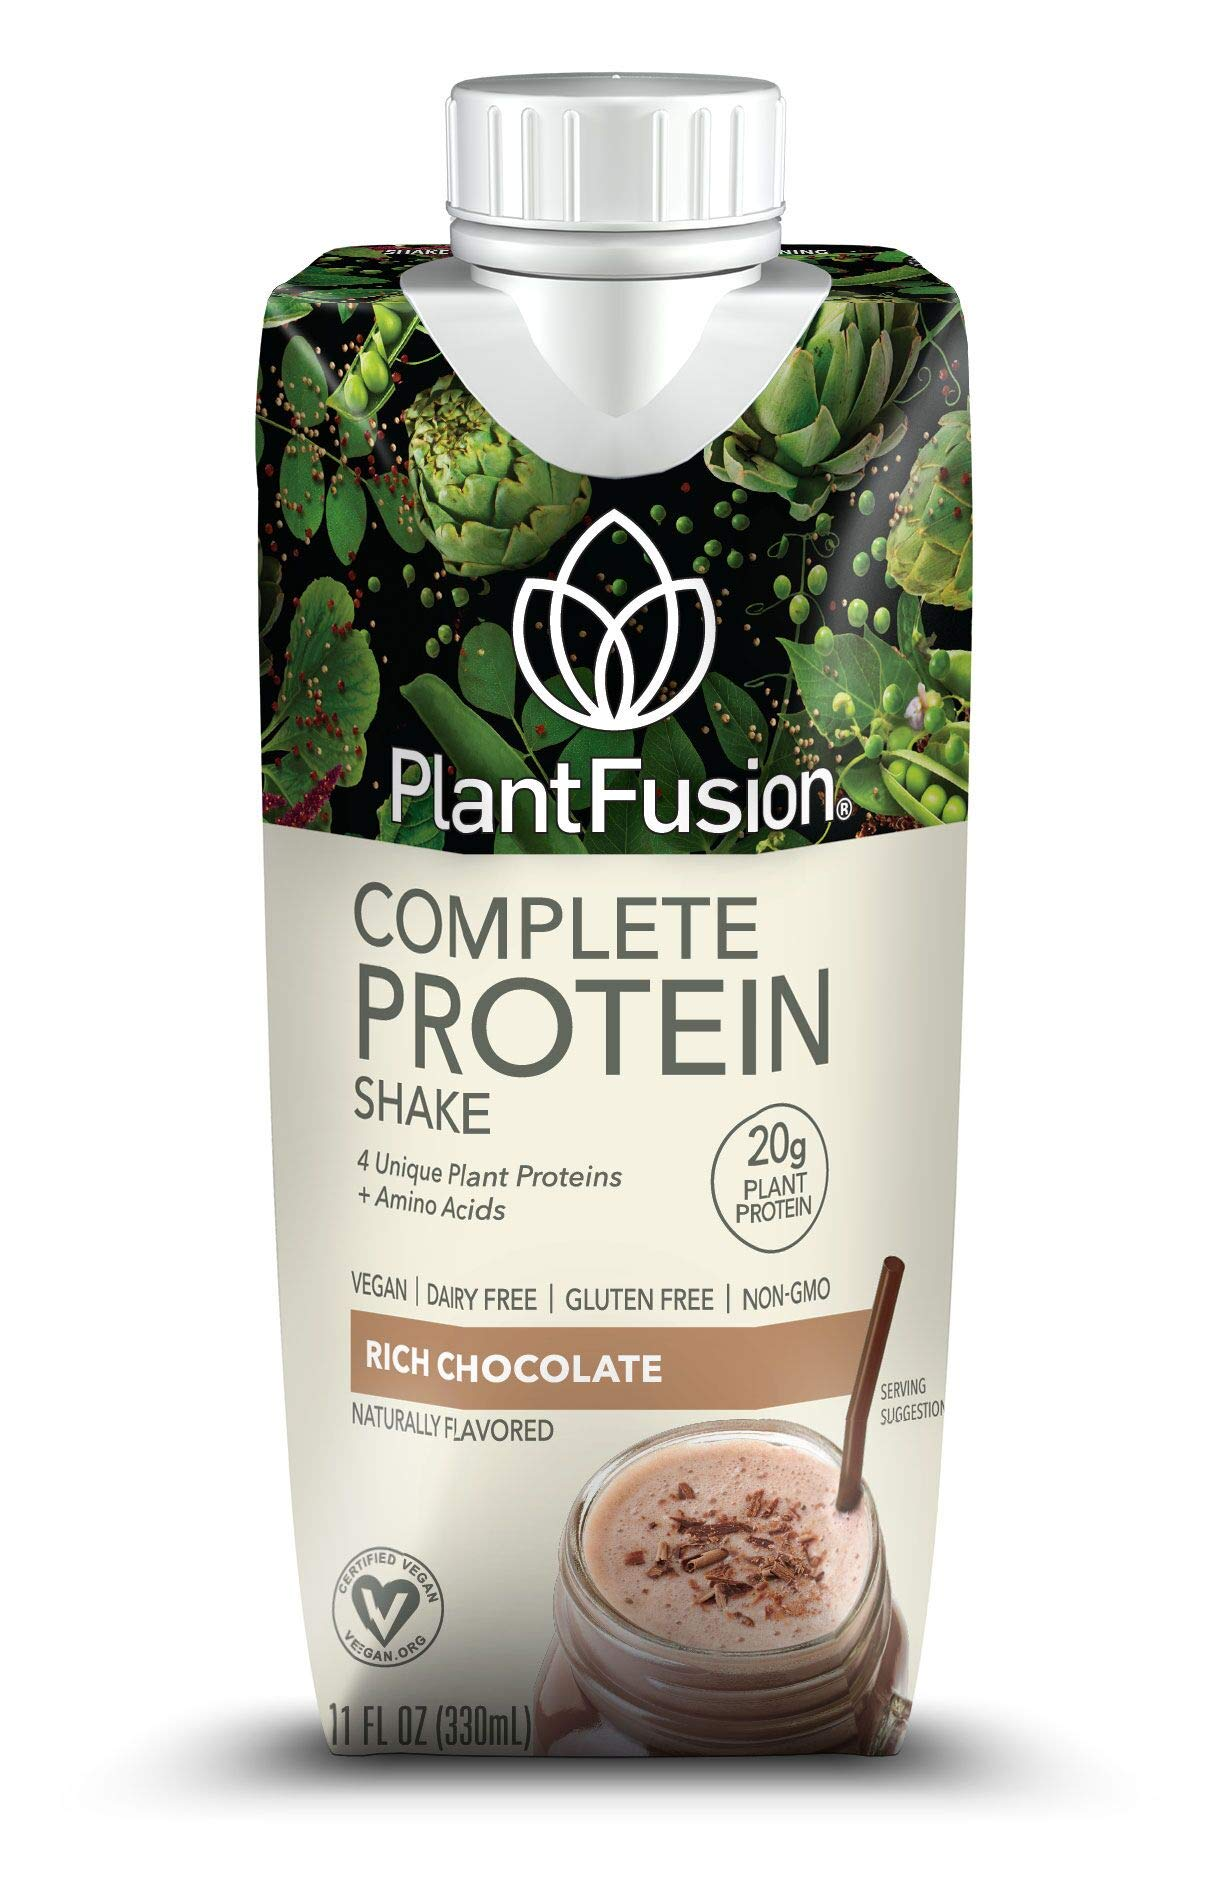 PlantFusion Complete Ready to Drink Plant Based Protein Shake, Chocolate, 11 oz  Carton, 12 Count, Gluten Free, Non-GMO by PlantFusion